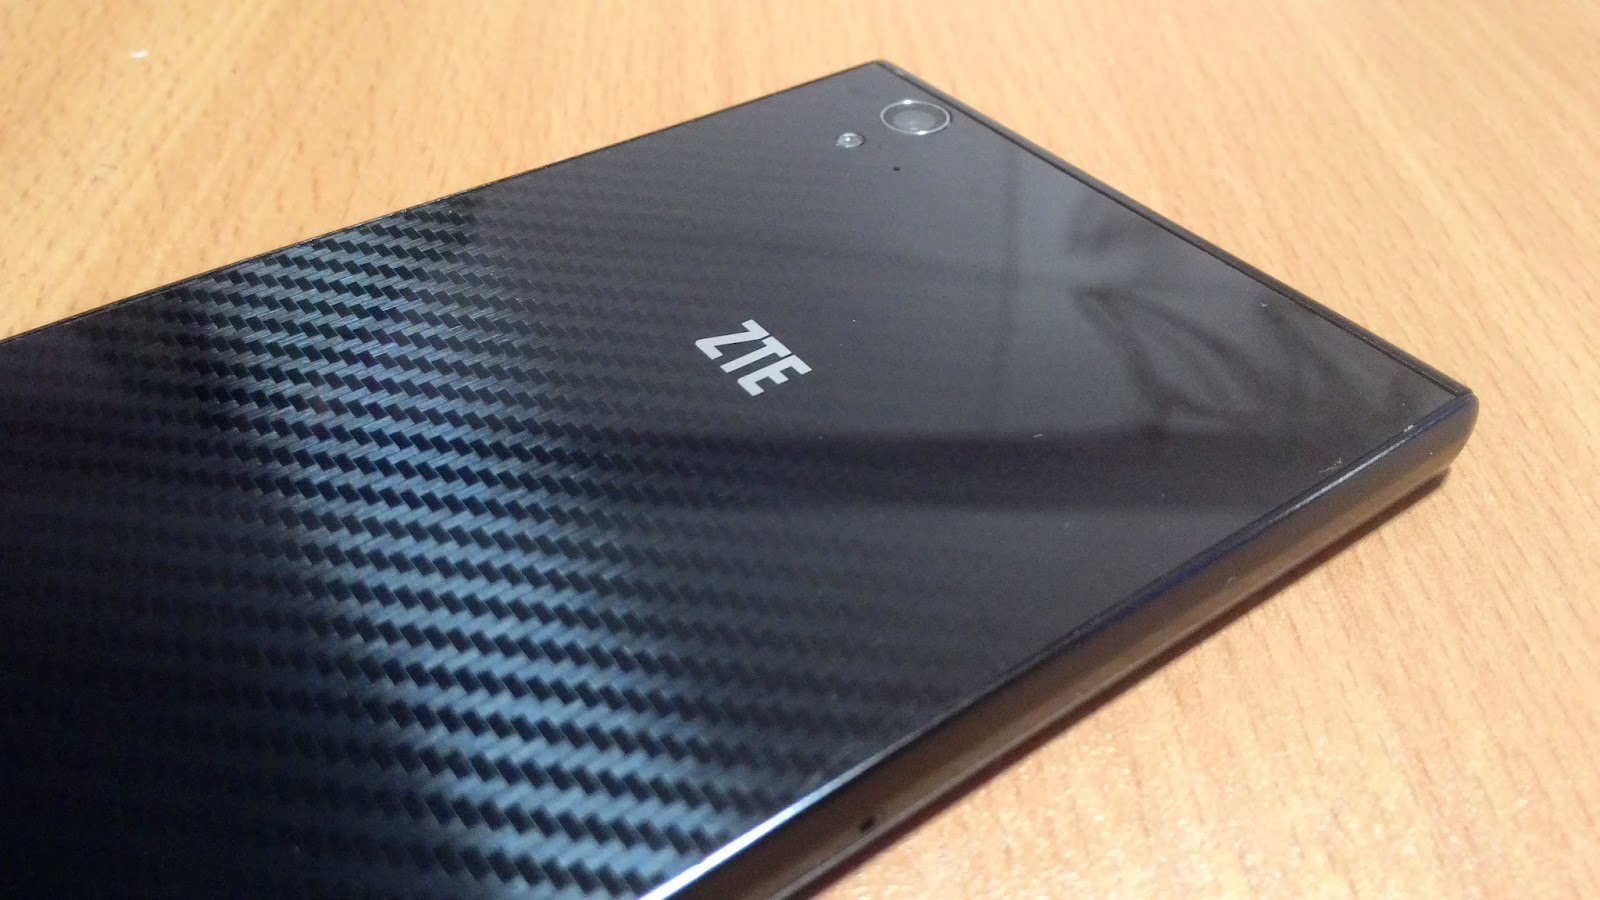 4G Android Smartphone for $299? - ZTE Blade VEC 4G - The